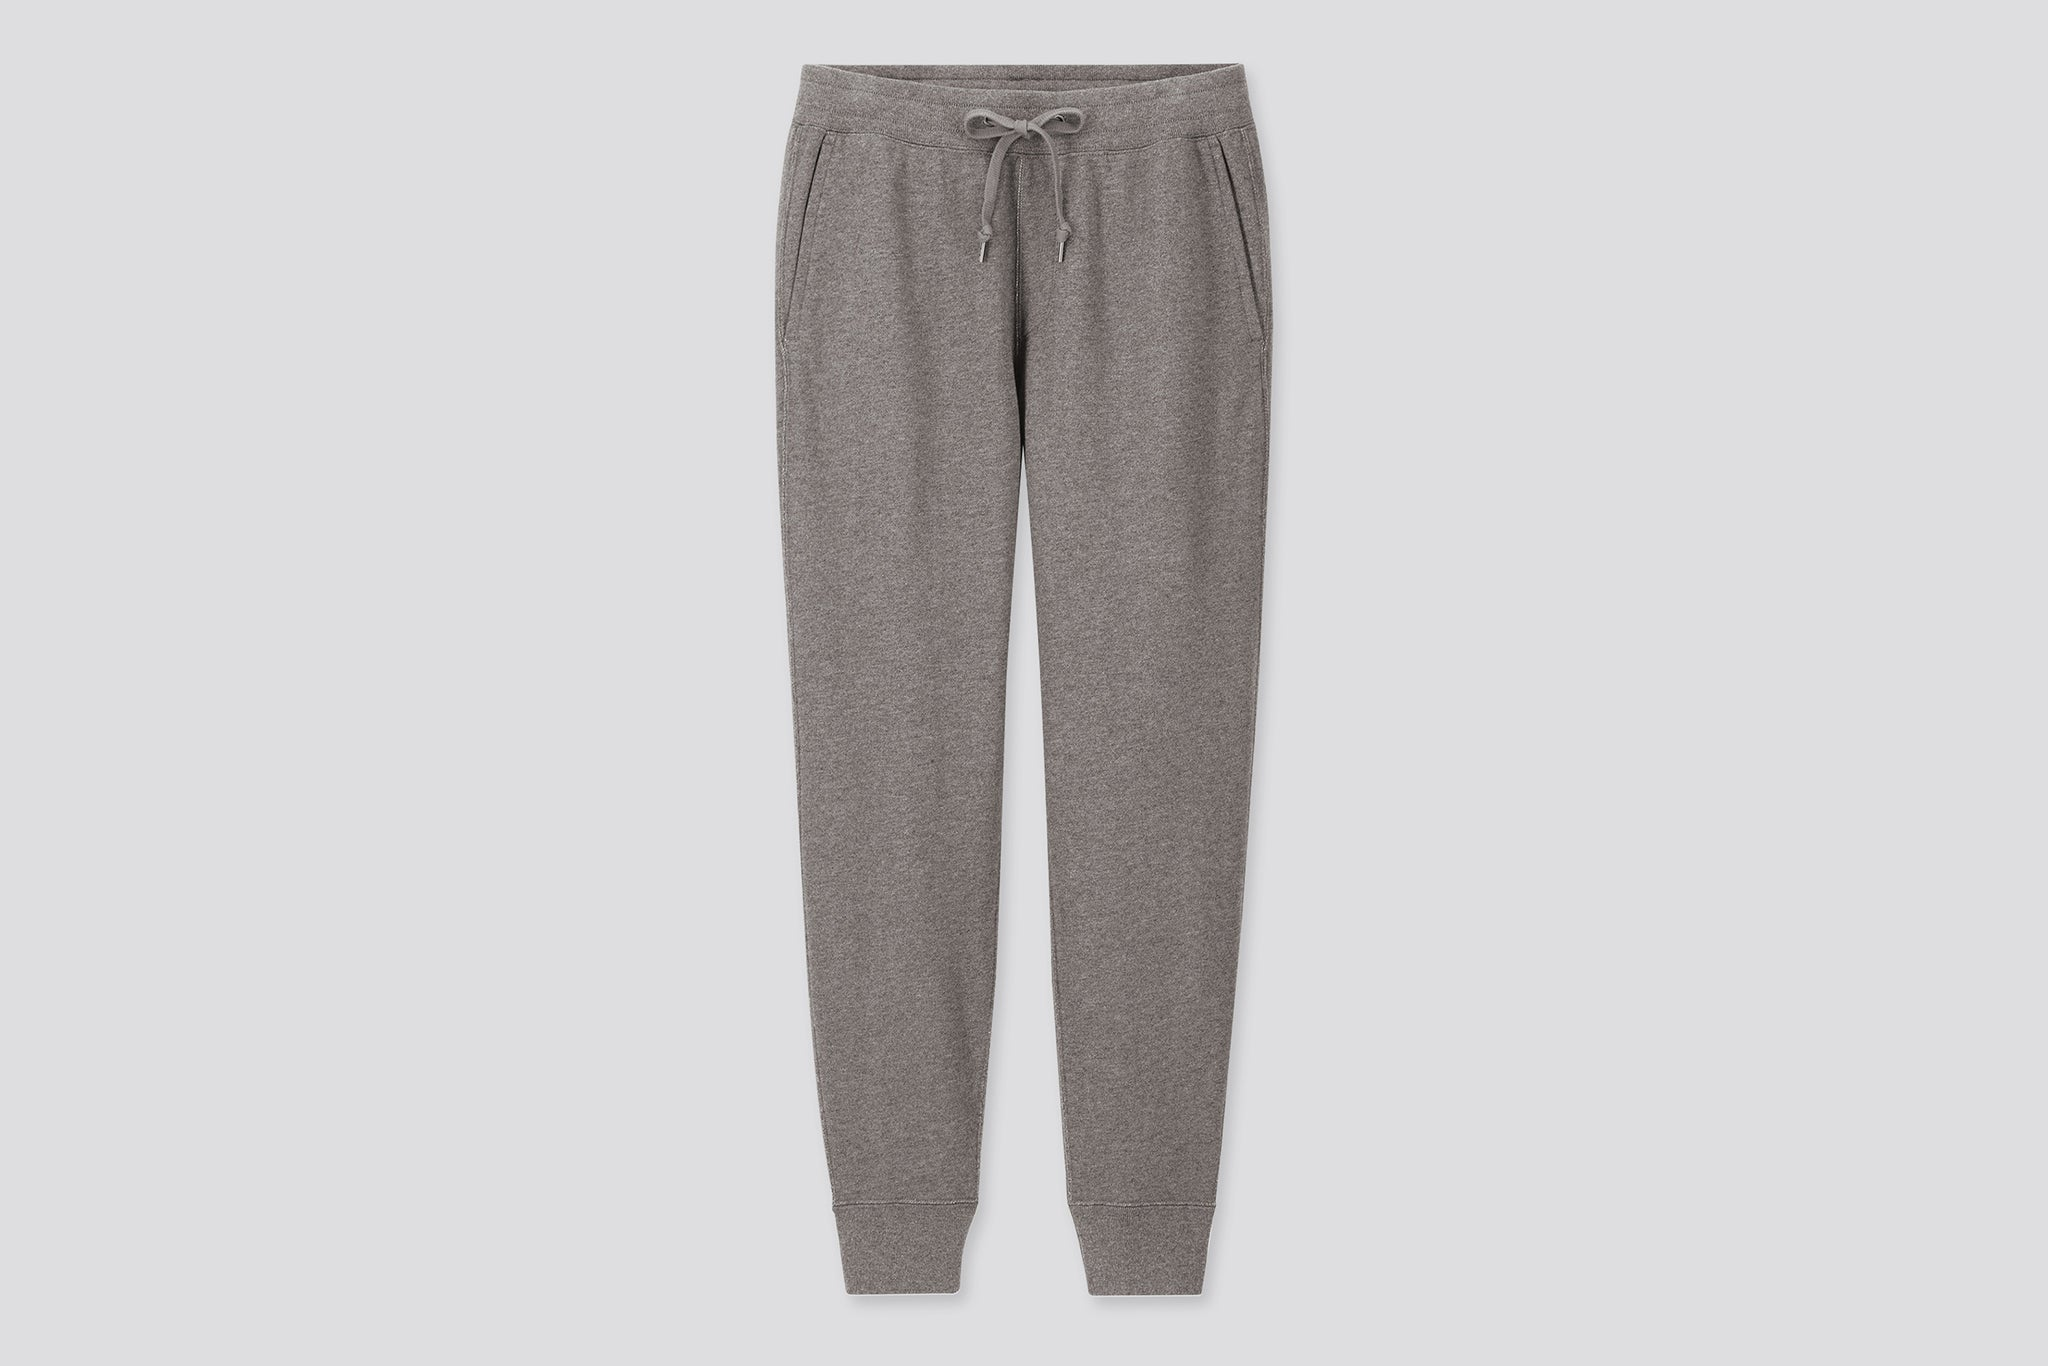 A pair of grey Uniqlo sweatpants.